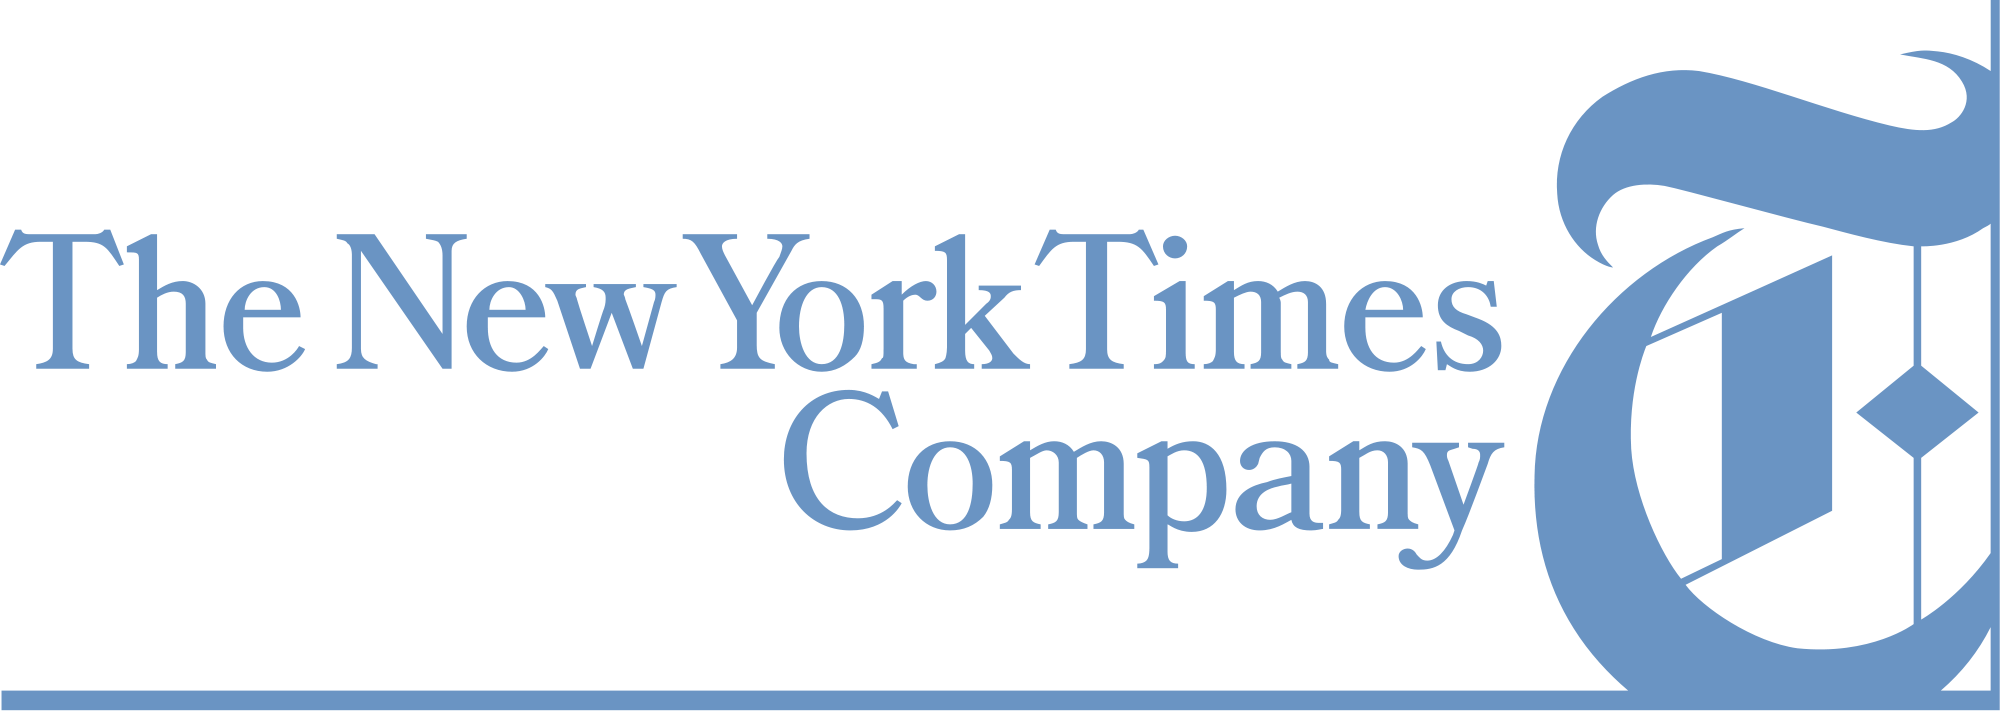 New york times logo png. File the company svg